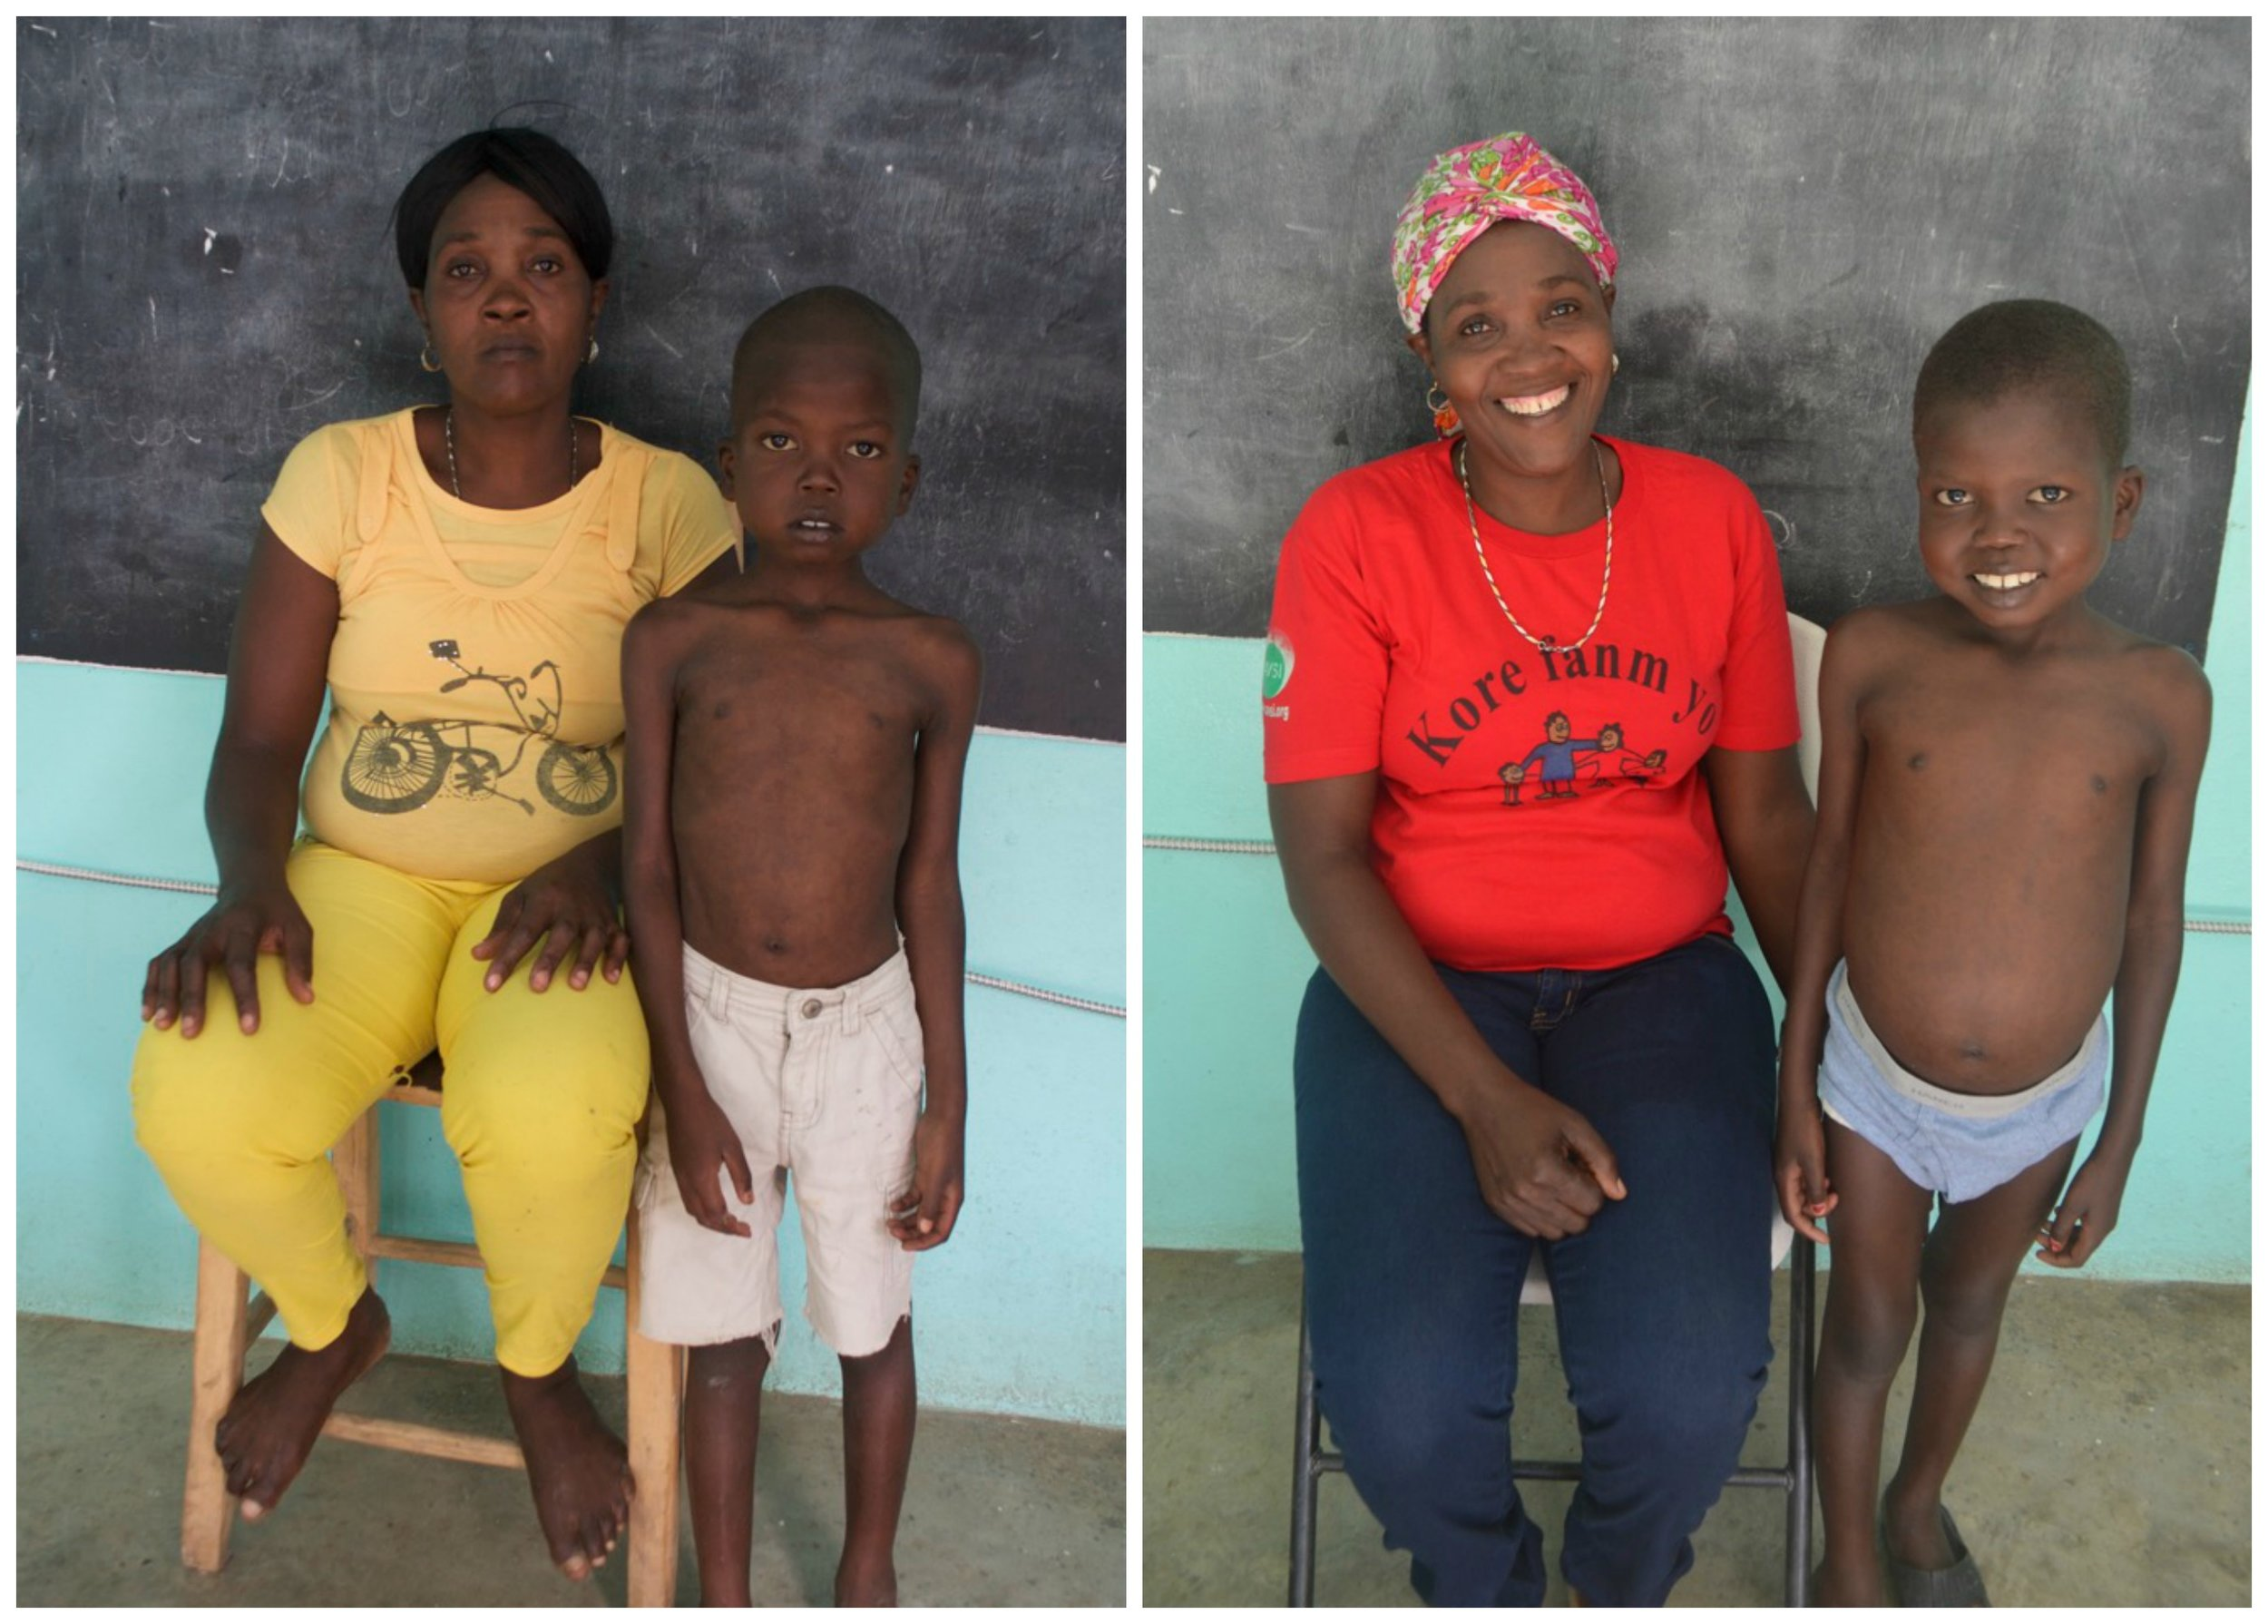 Kely and his Aunt before and after rehabilitation for Severe Acute Malnutrition